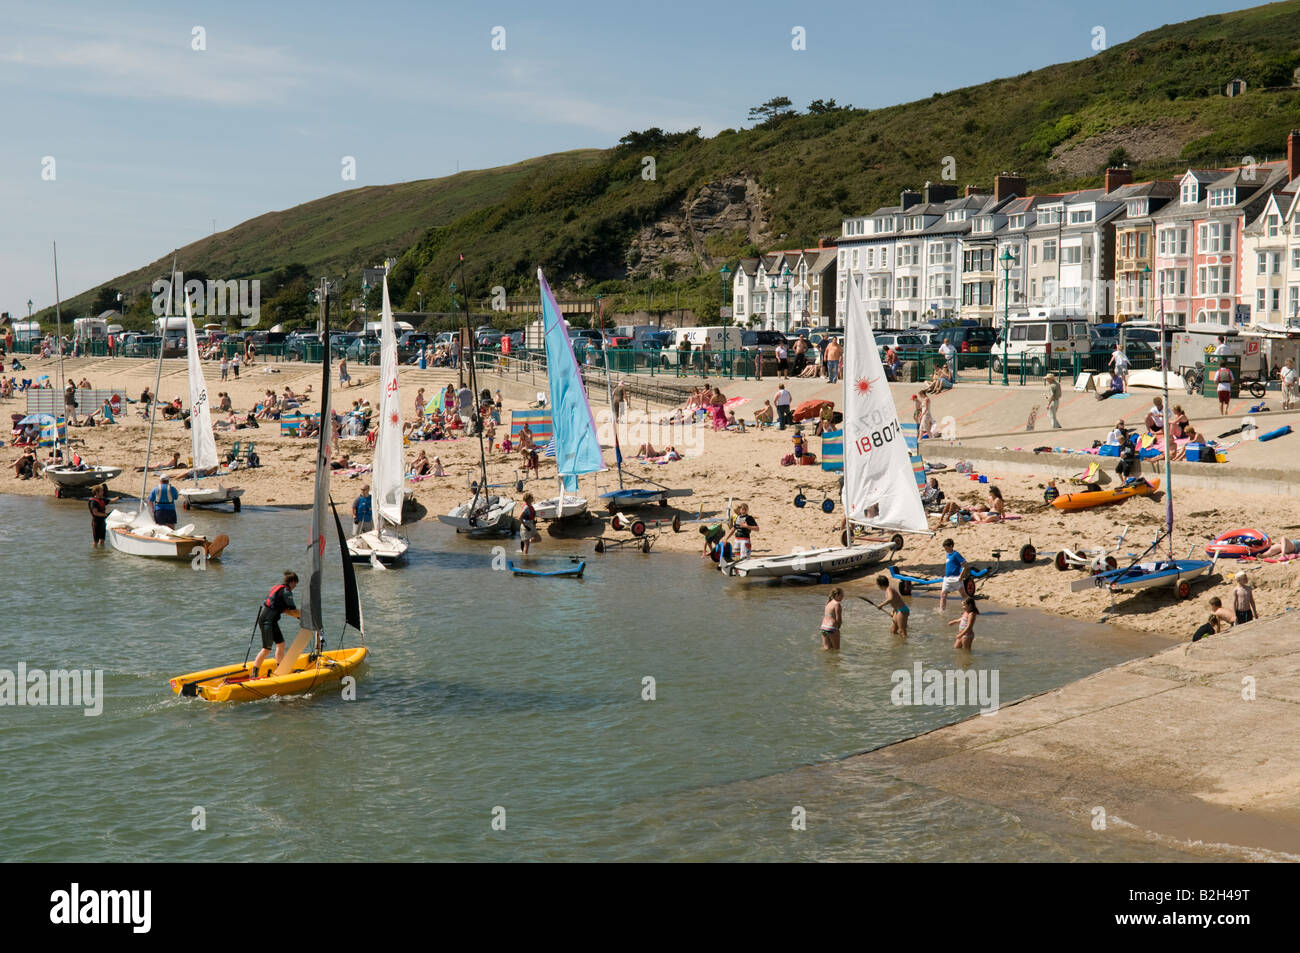 people and sailing dinghies on the sandy beach Aberdyfi seaside resort Snowdonia Wales summer afternoon - Stock Image